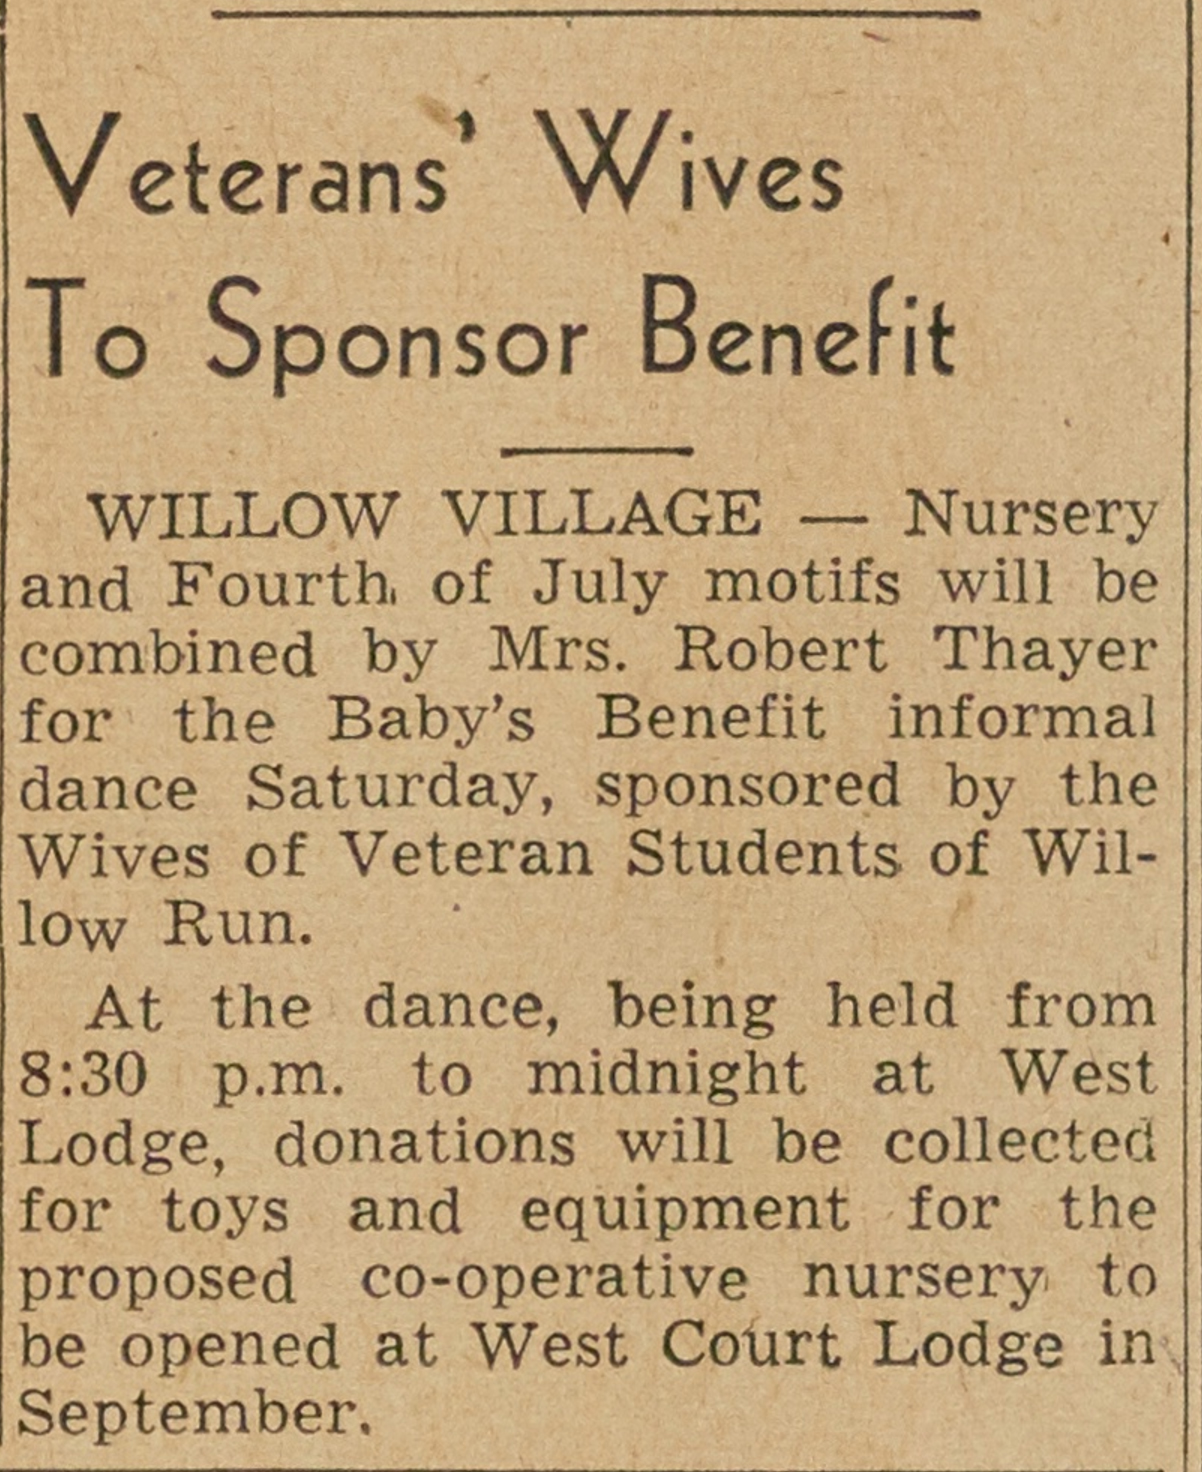 Veterans' Wives To Sponser Benefit image